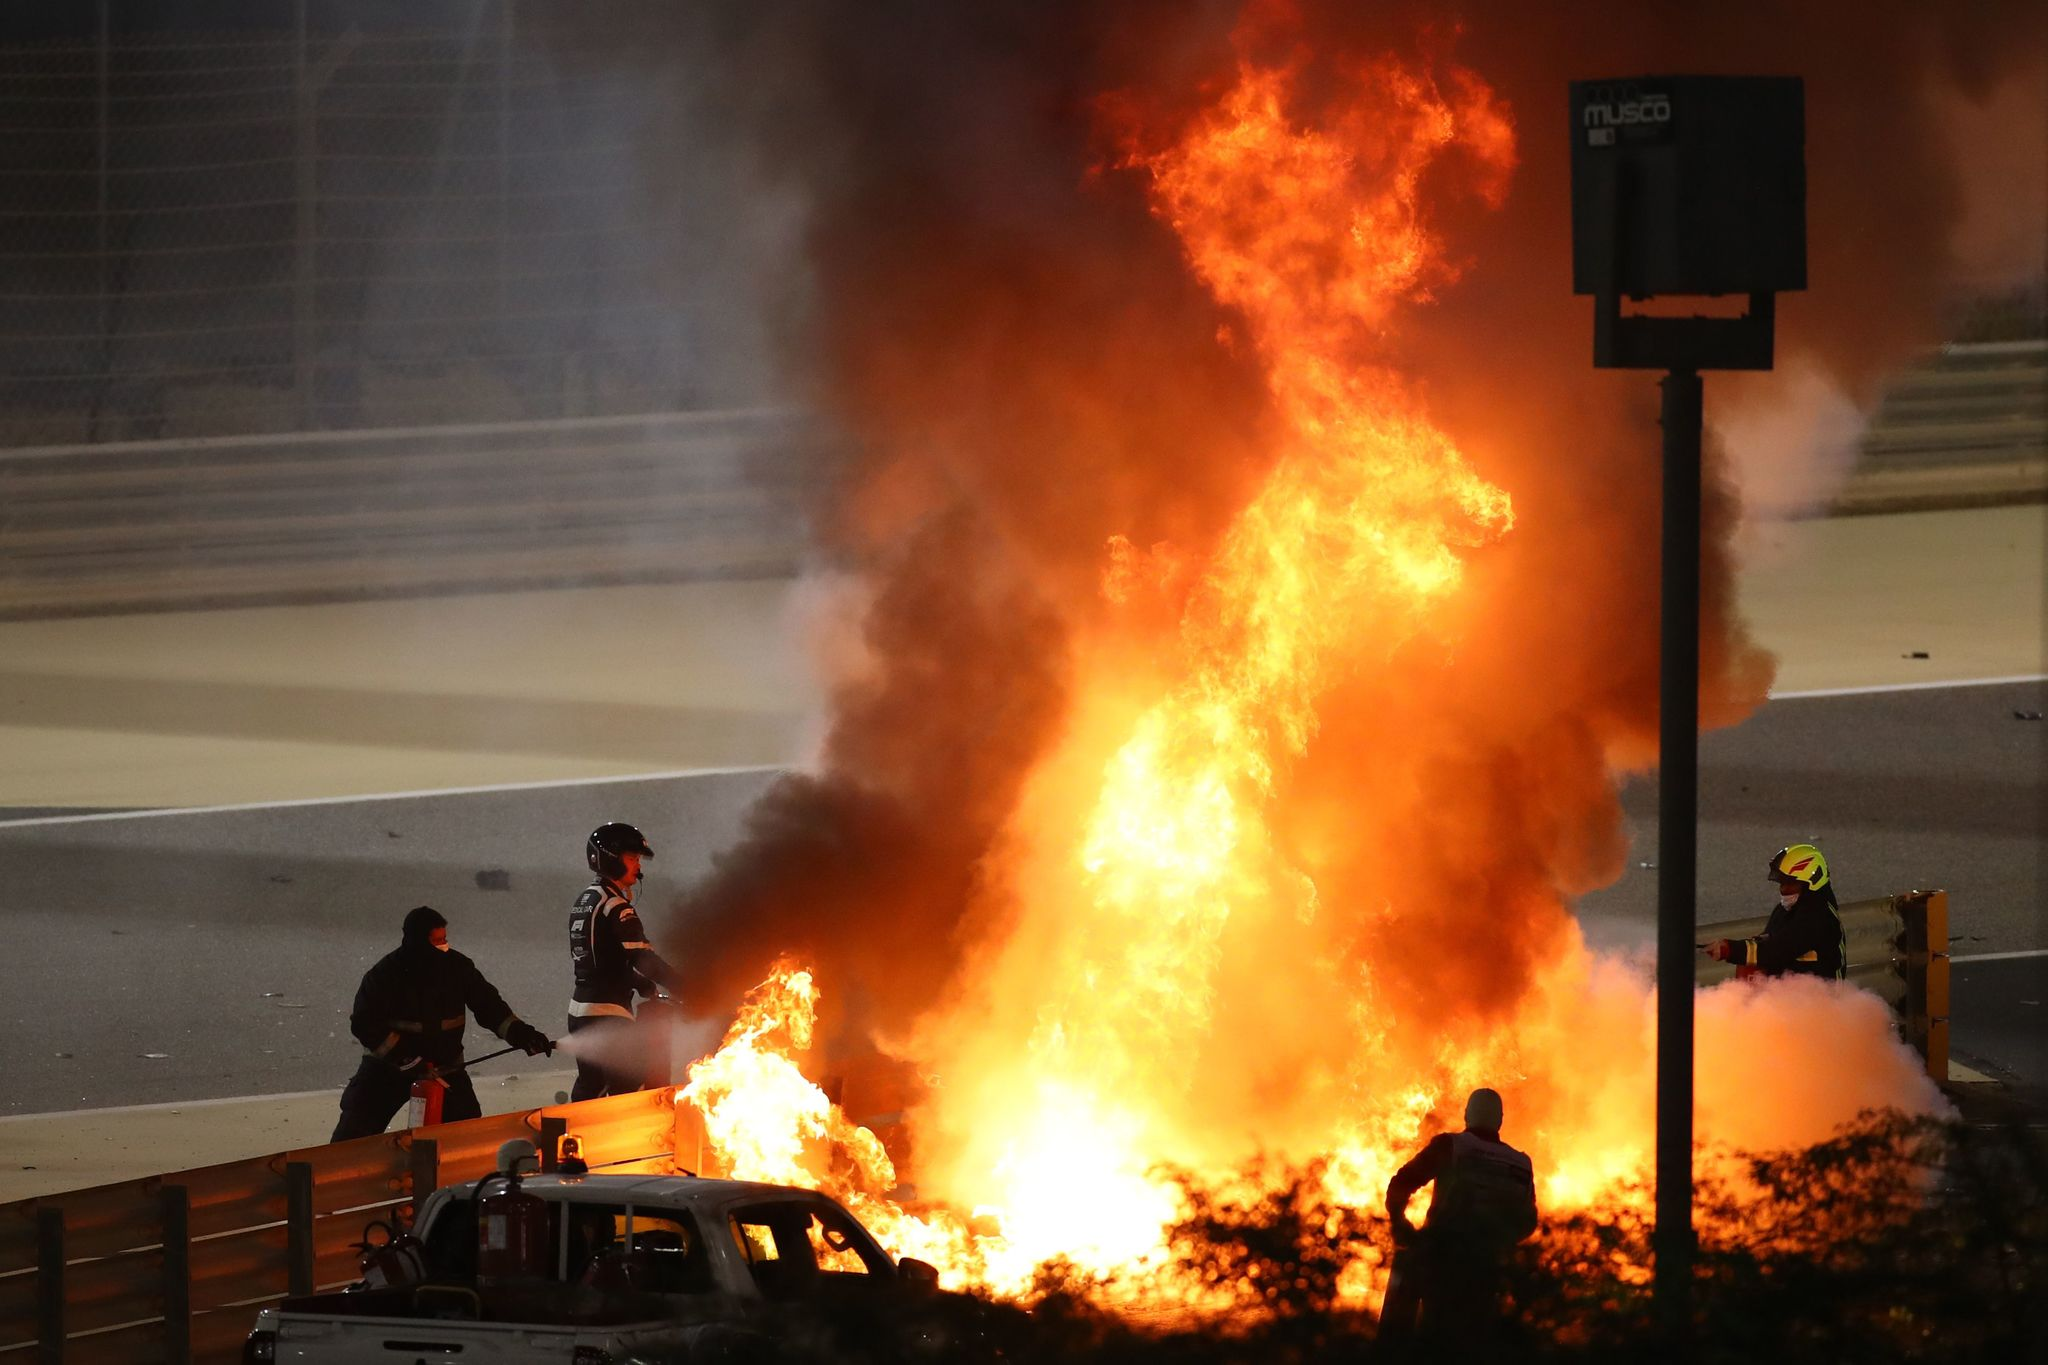 TOPSHOT - Fire marshals put out a fire on Haas F1s French driver Romain lt;HIT gt;Grosjean lt;/HIT gt;s car during the Bahrain Formula One Grand Prix at the Bahrain International Circuit in the city of Sakhir on November 29, 2020. (Photo by Bryn Lennon / POOL / AFP)